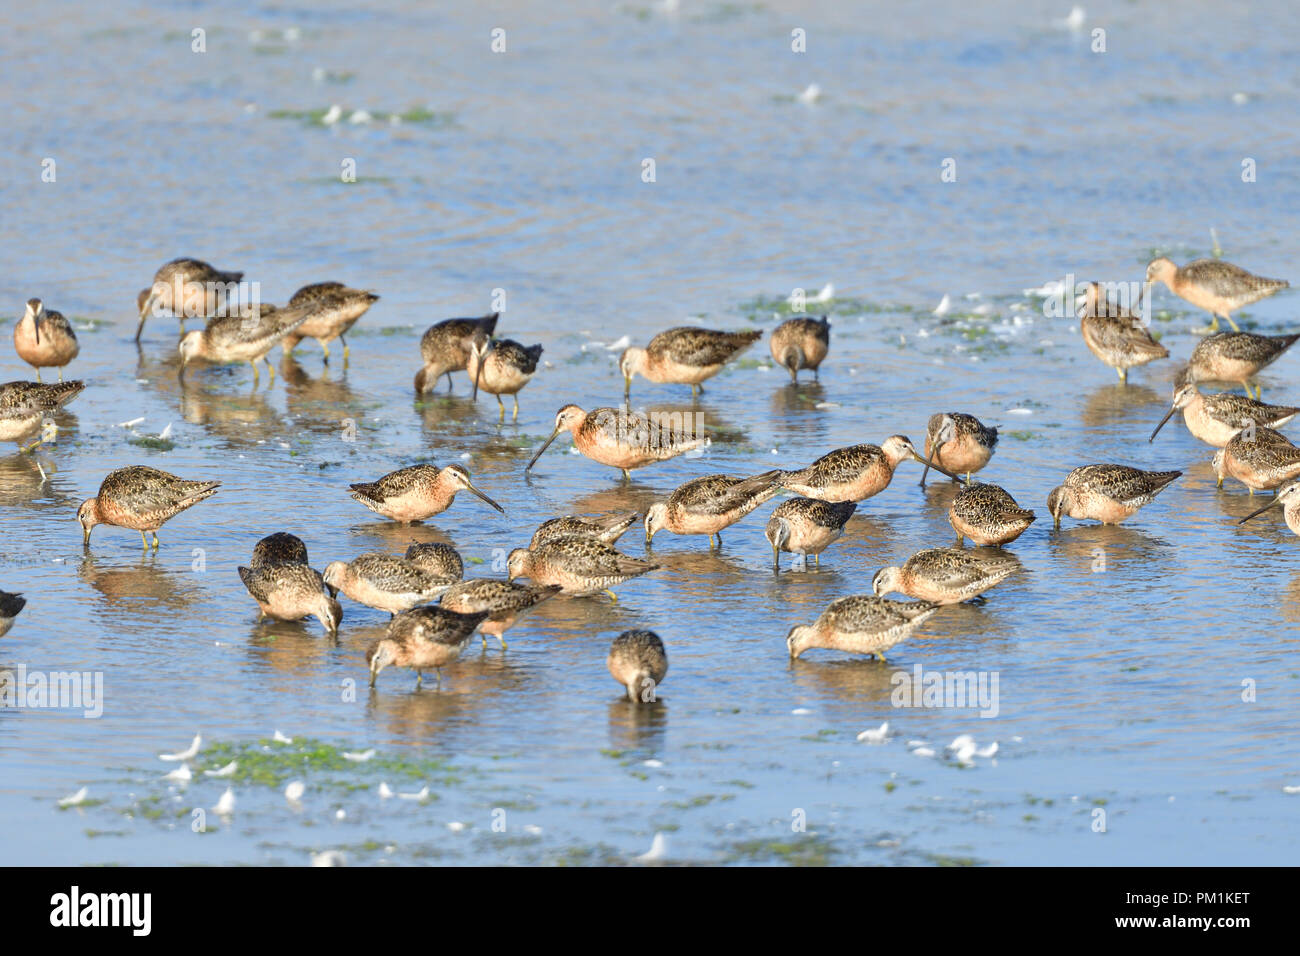 A Flock of Sandpipers - Stock Image